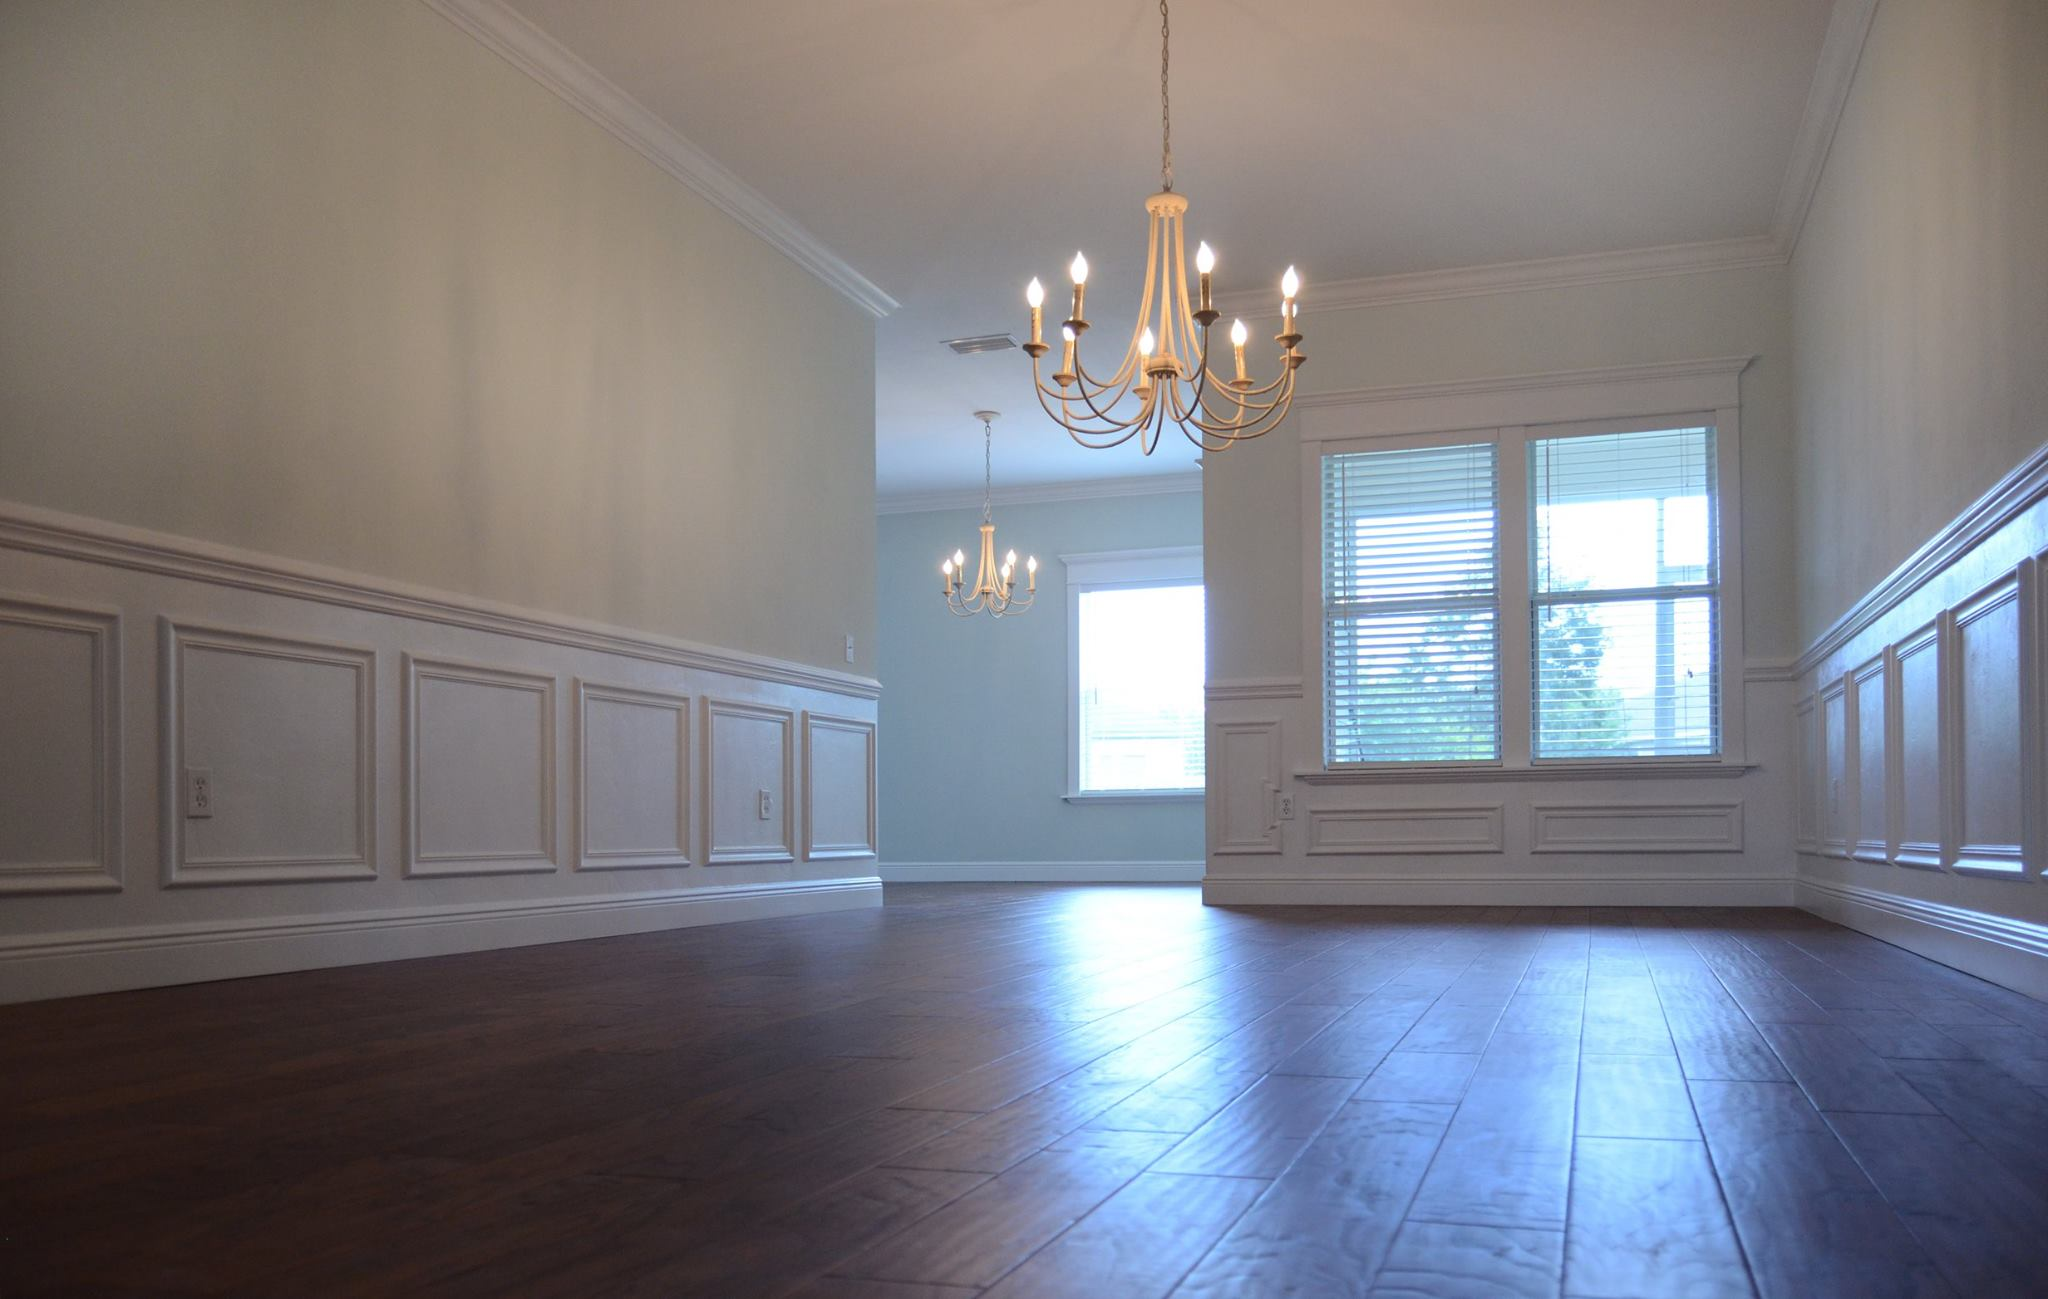 Sold: Luxurious Home in Longleaf